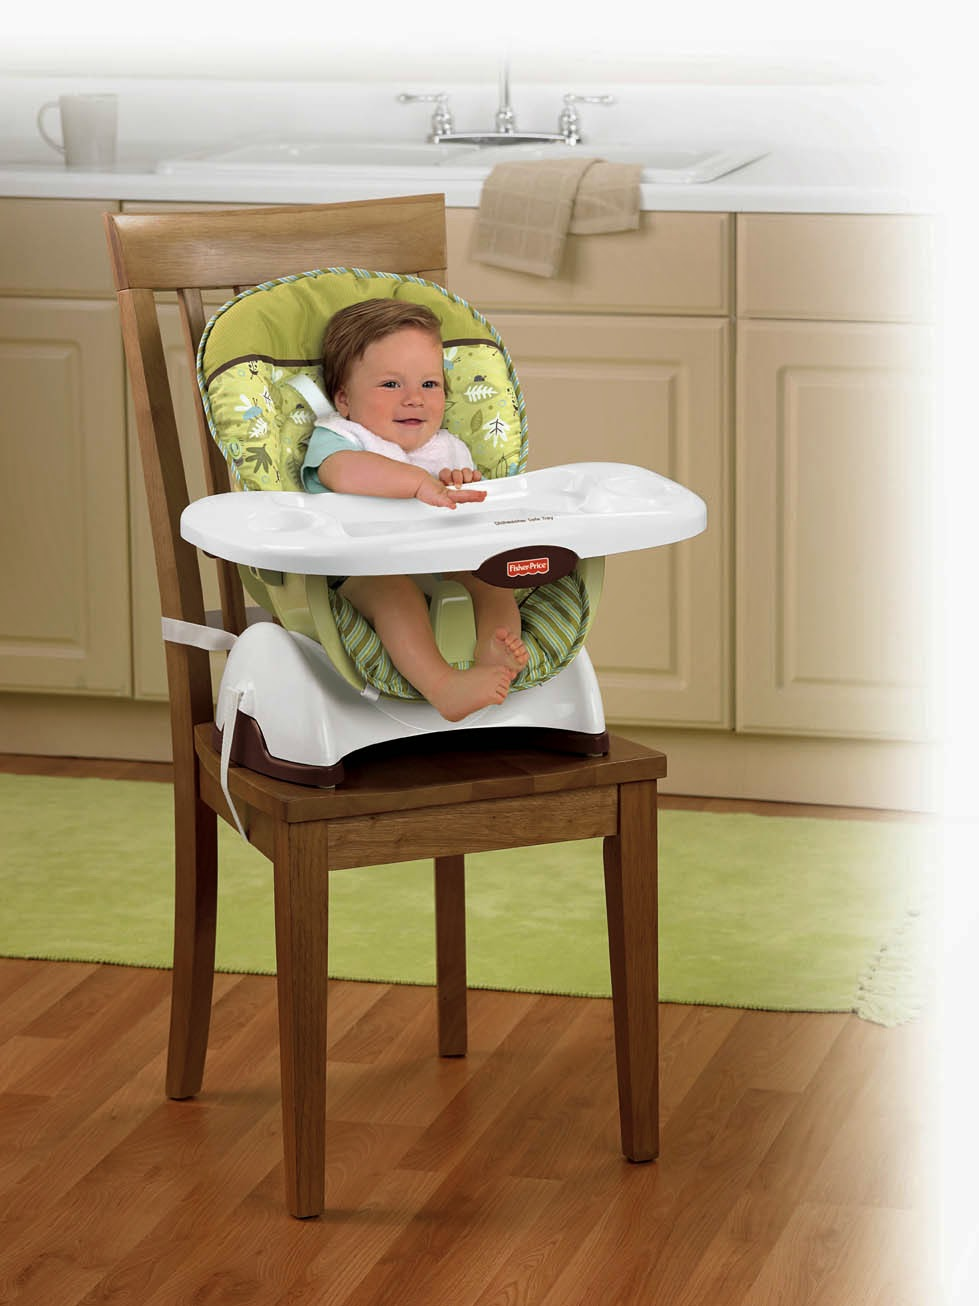 http://www.wayfair.com/Fisher-Price-Spacesaver-High-Chair-X1465-FIS1554.html